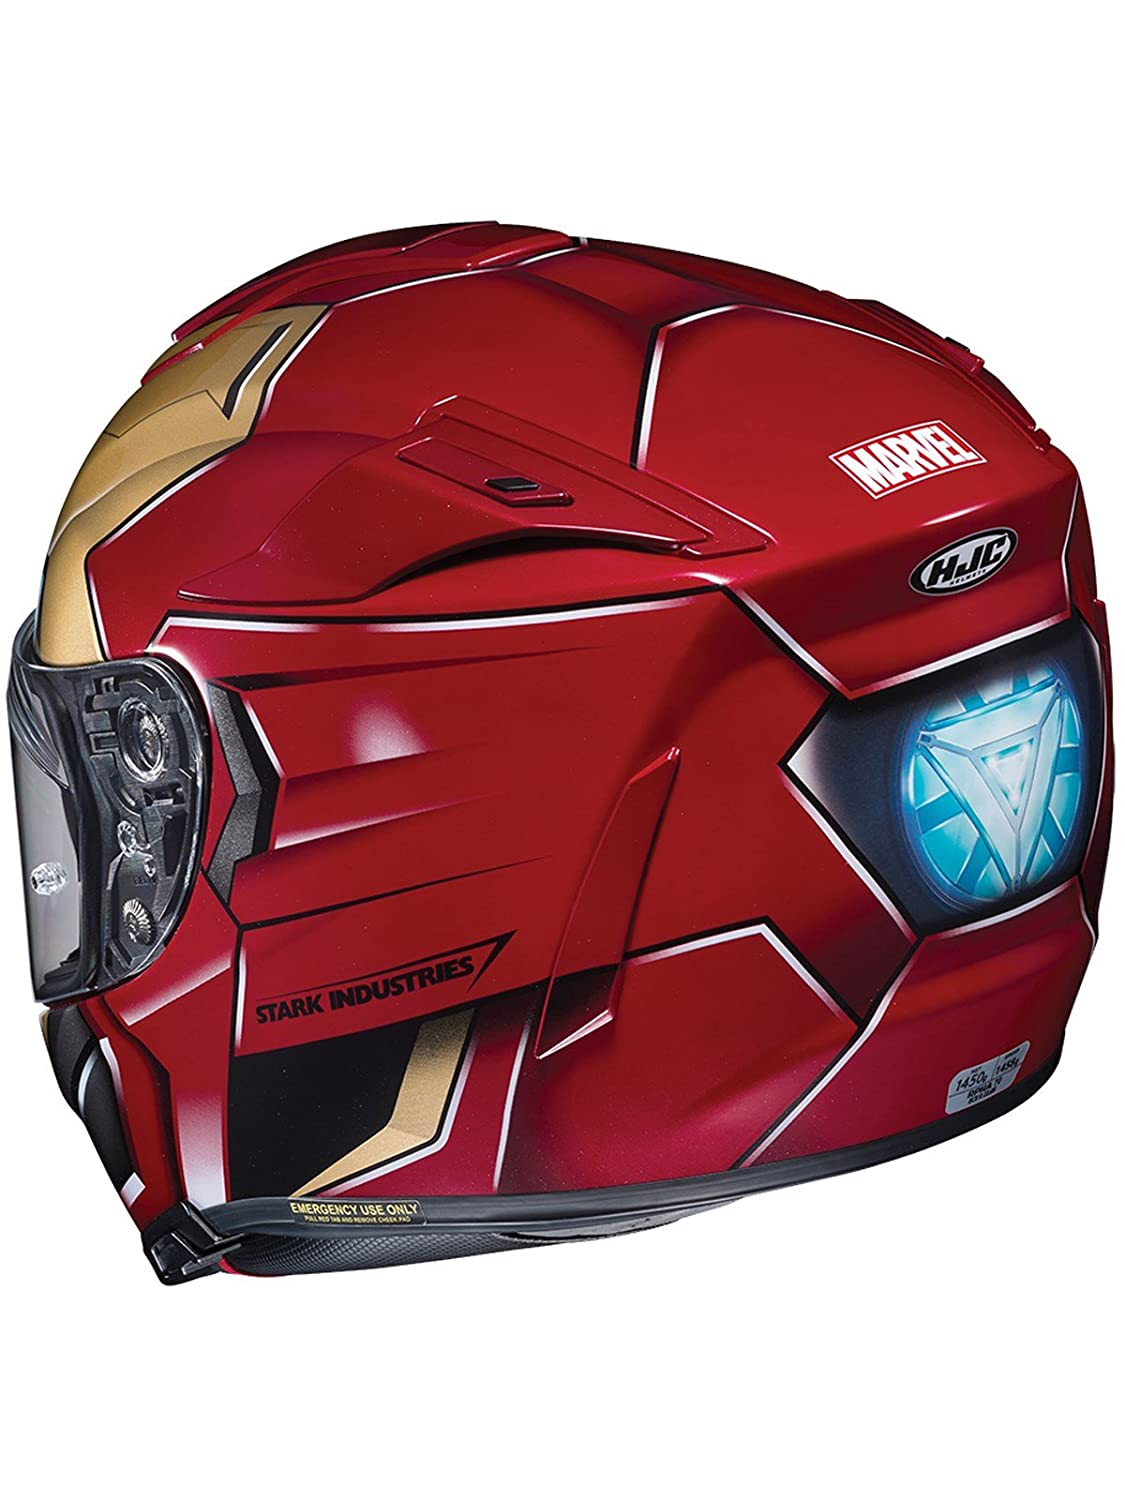 Casco Moto Hjc Marvel Rpha 70 Ironman Homecoming Rojo-Oro (M , Rojo): Amazon.es: Deportes y aire libre